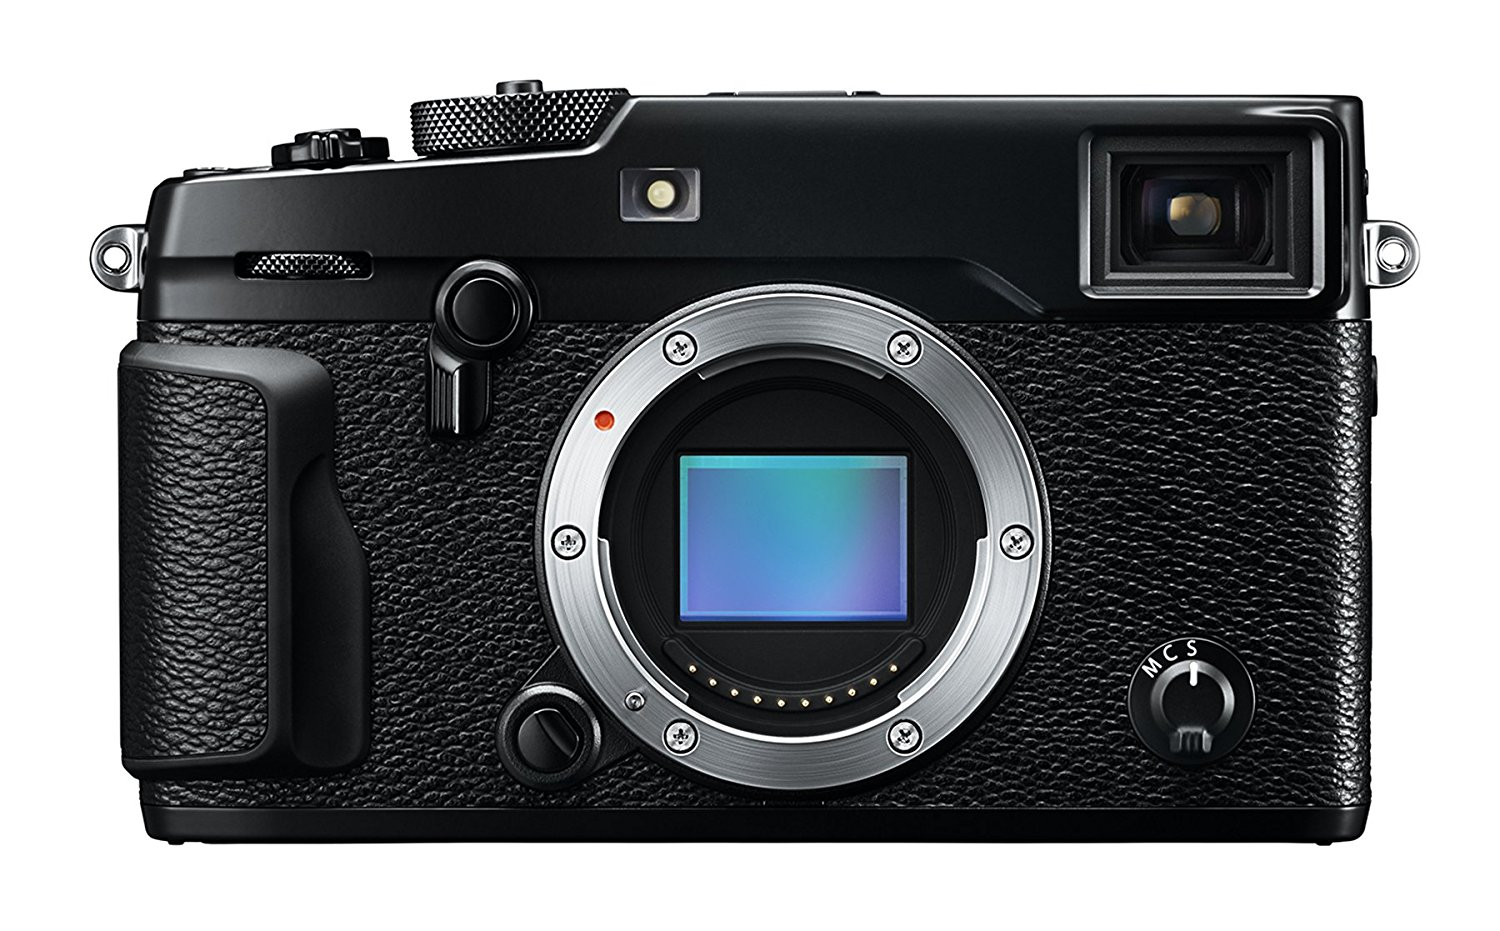 Fuji X-Pro 2 - It's true, the X-T2 and the X-Pro 2 could be in this spot for image quality interchangeably – after all, most recent Fuji bodies share the same sensor – but the subtleties of this camera make it a formidable stills camera.You can read a full review here, but here's what you need to know: Fuji designed this camera as an updated rangefinder – complete with an optical viewfinder, helpful for street, wildlife, or sports photography – and everything from the ergonomics to the image output is wonderful.With exceptional image quality and latitude in your RAW files, you'll never feel like this camera can't handle what you're trying to shoot. It's tactile, portable, and empowering. Not only can you take it anywhere, but you'll actually want to.Note that you can also shoot 4K video on the X-Pro 2, but without the flat Eterna profile.If image quality is important to you and you enjoy the 'rangefinder' look and feel, this is the camera for you.